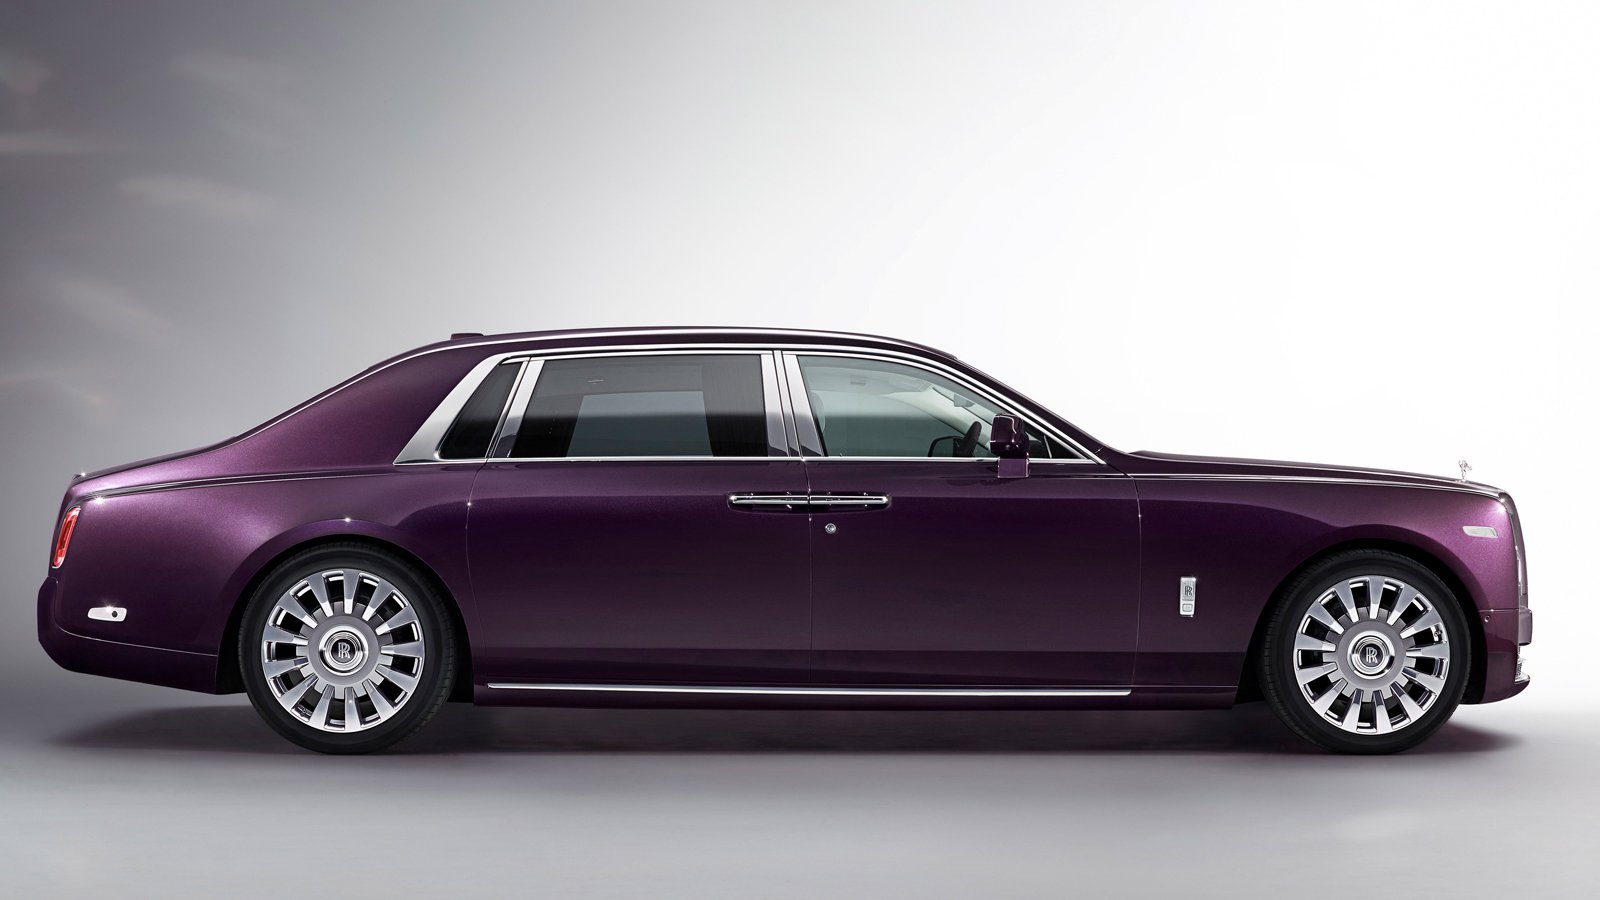 Rolls Royce Phantom Viii Design Specs Images And Features